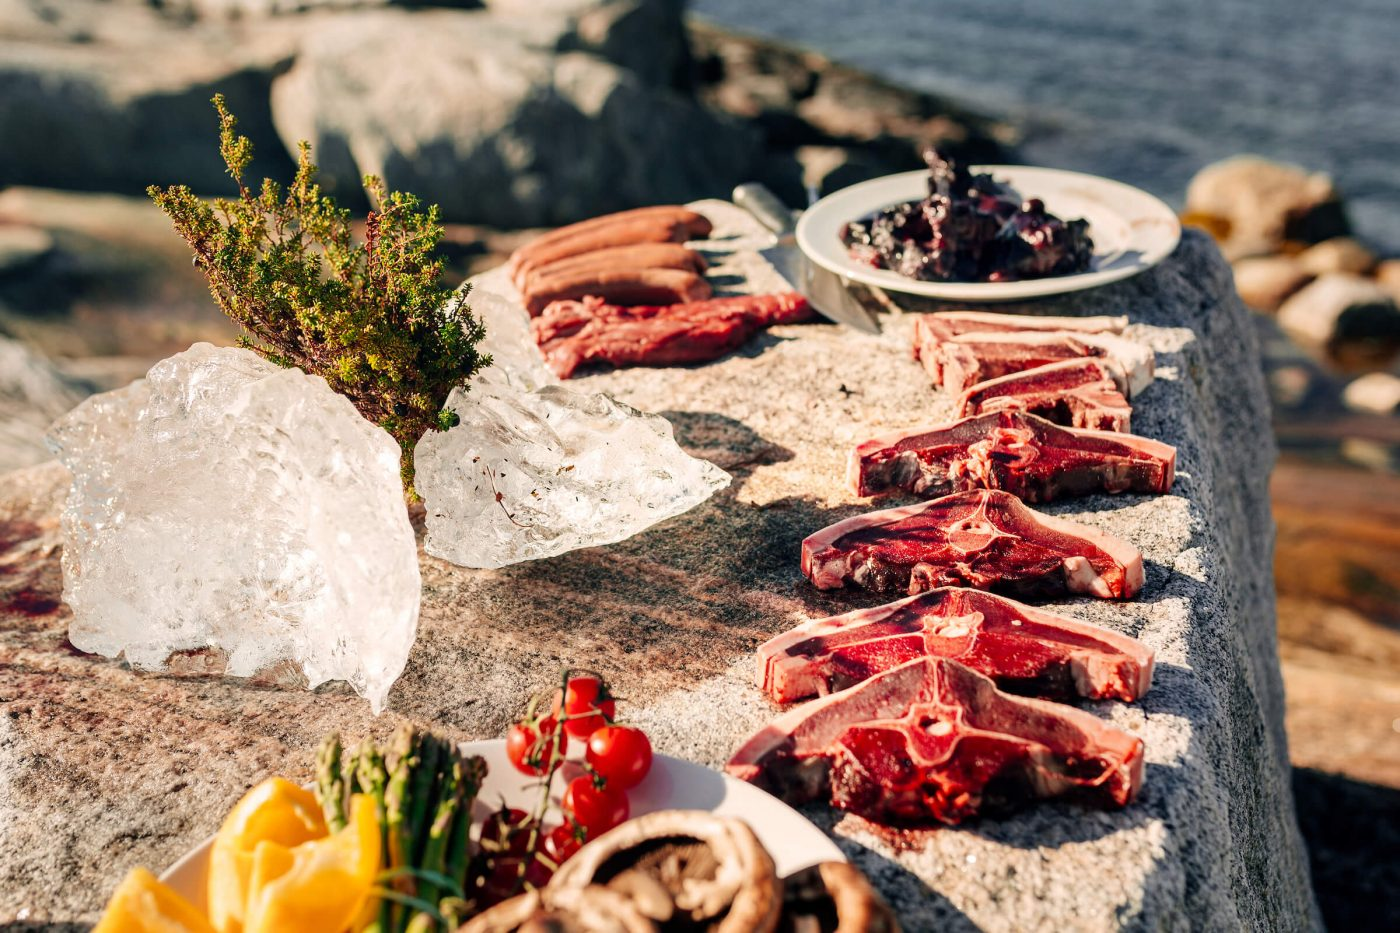 A selection of greenlandic meat being prepared on the rocks in Nuuk in Greenland. Photo by Rebecca Gustafsson - Visit Greenland